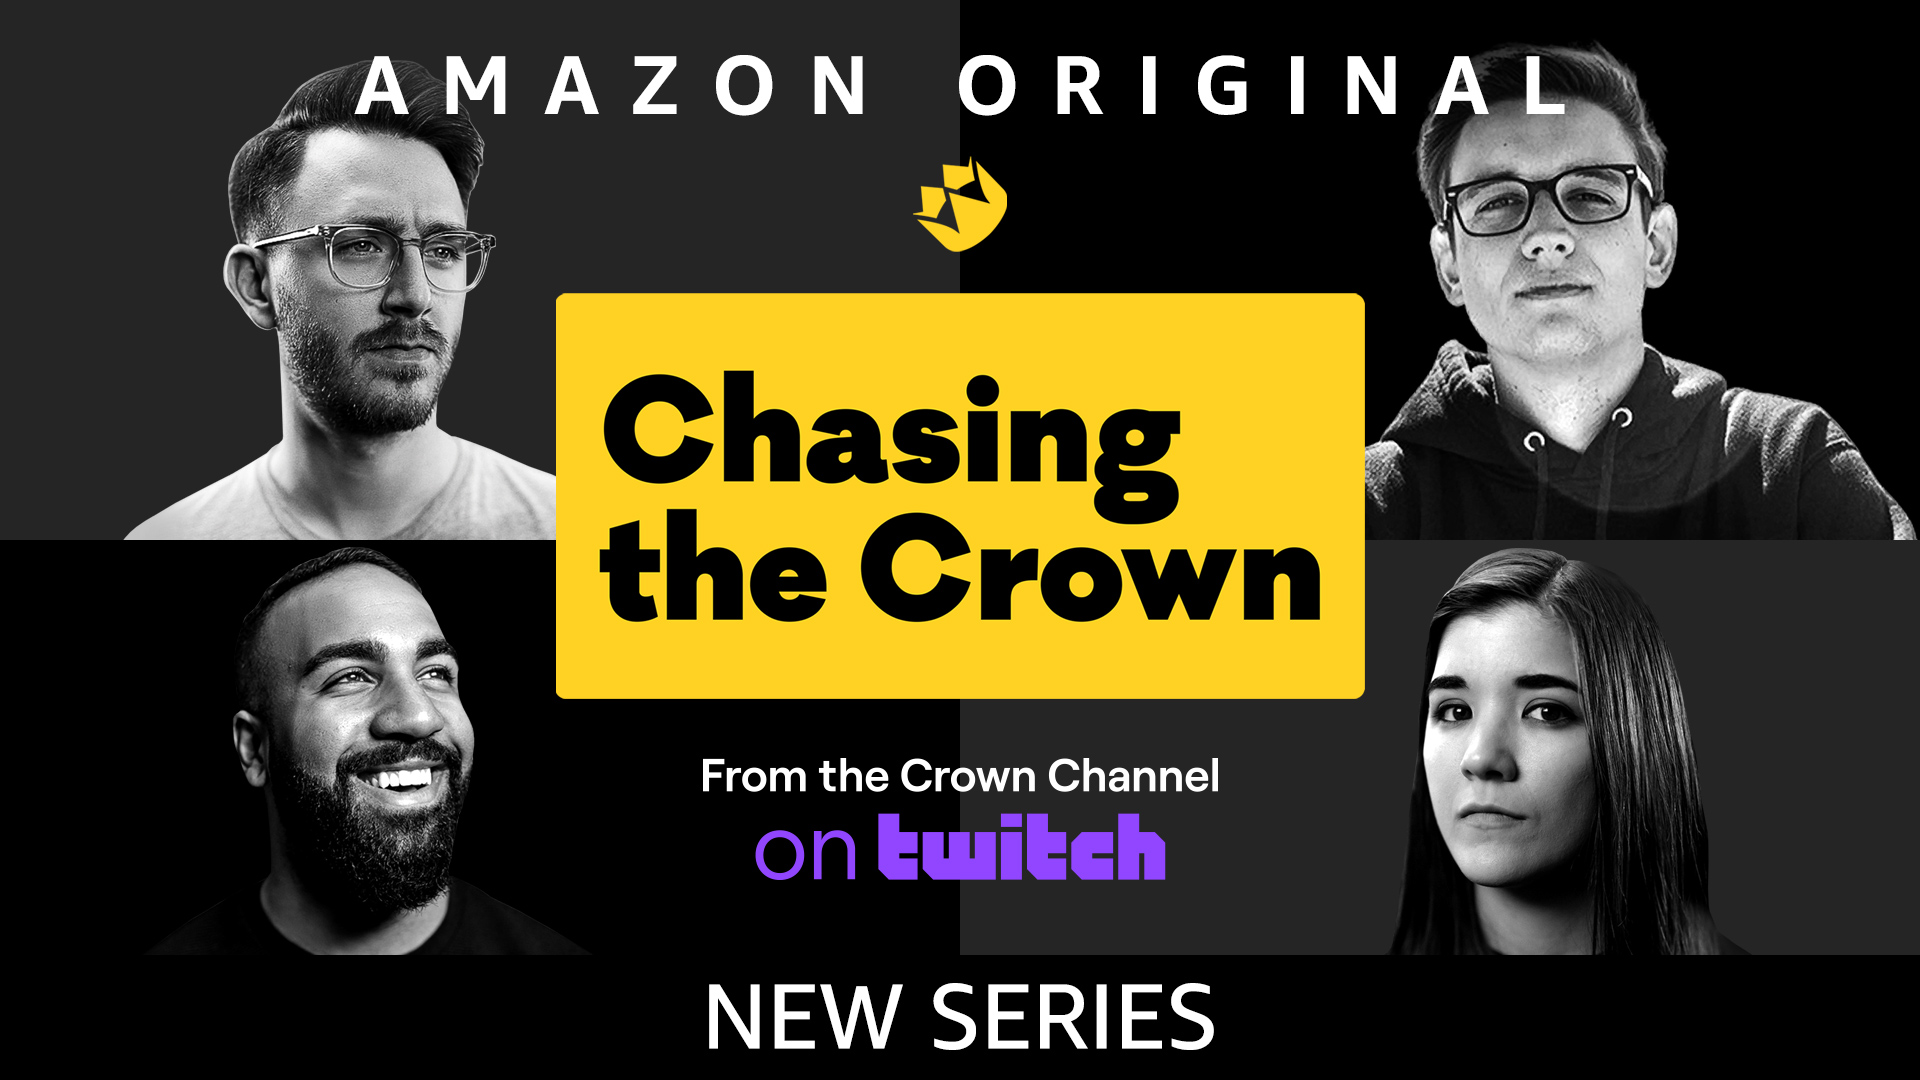 Chasing The Crown: Dreamers to Streamers Season 1